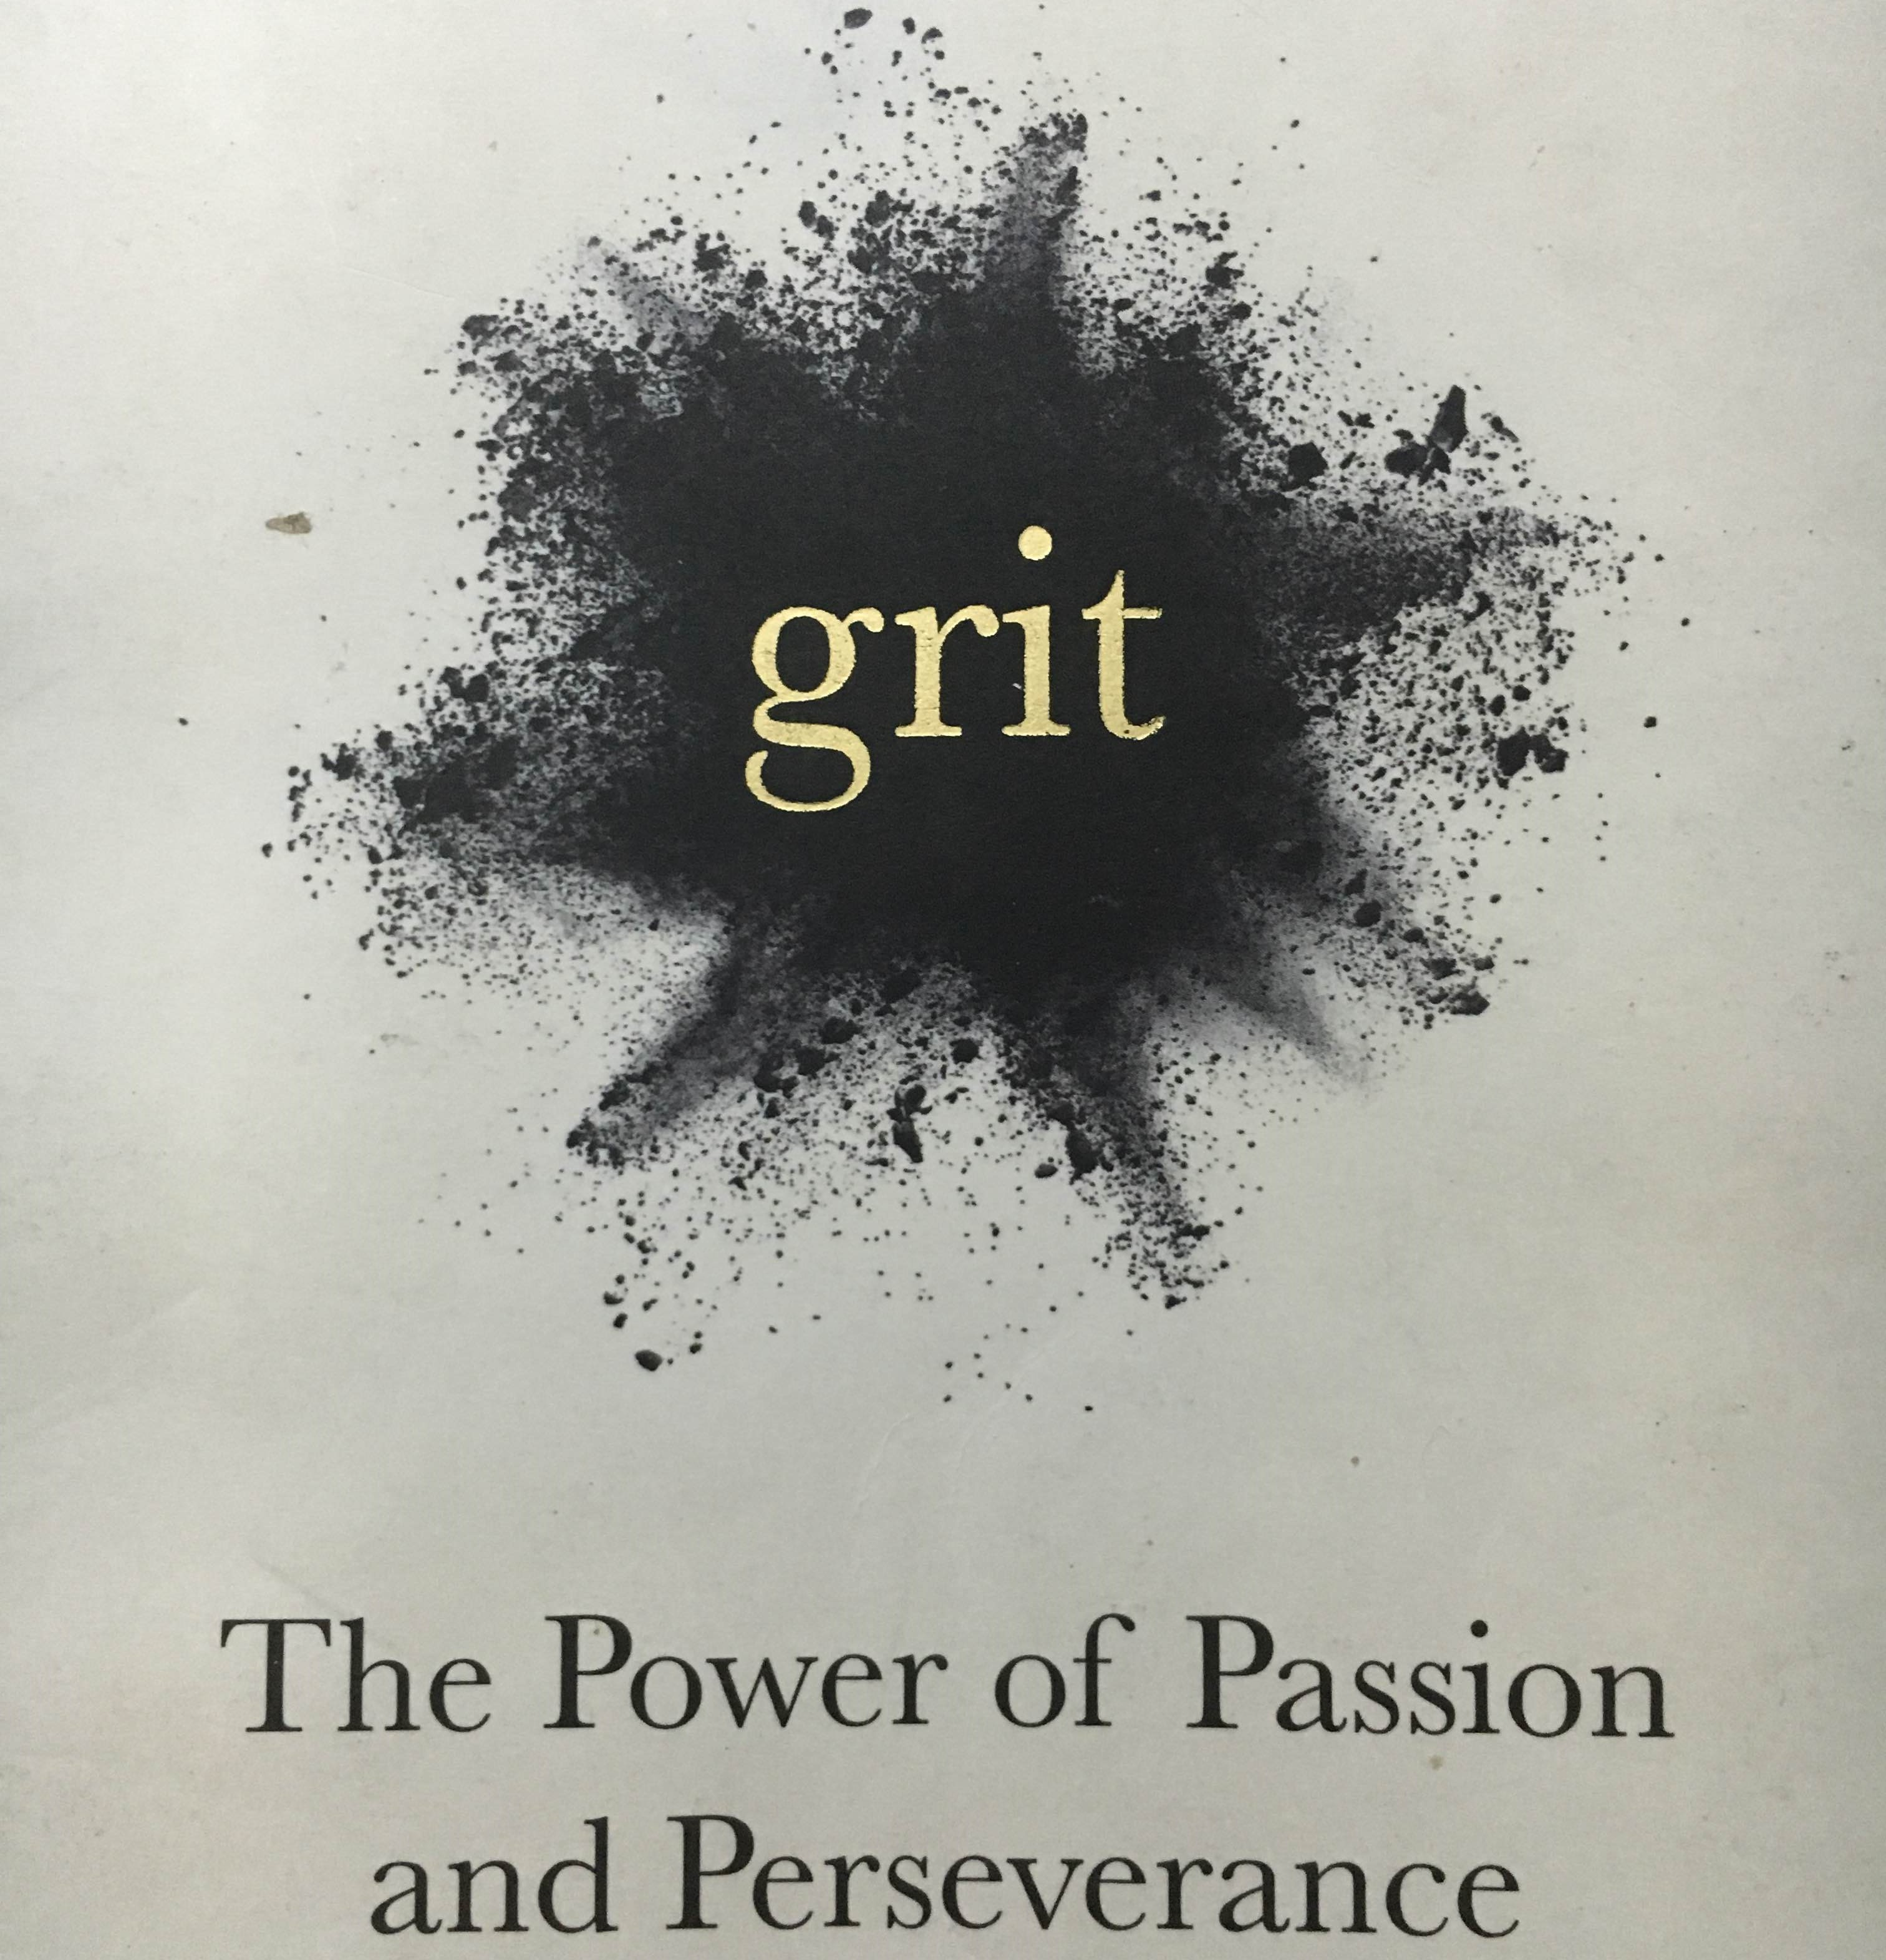 'Grit' by Angela Duckworth - Book Summary Part II